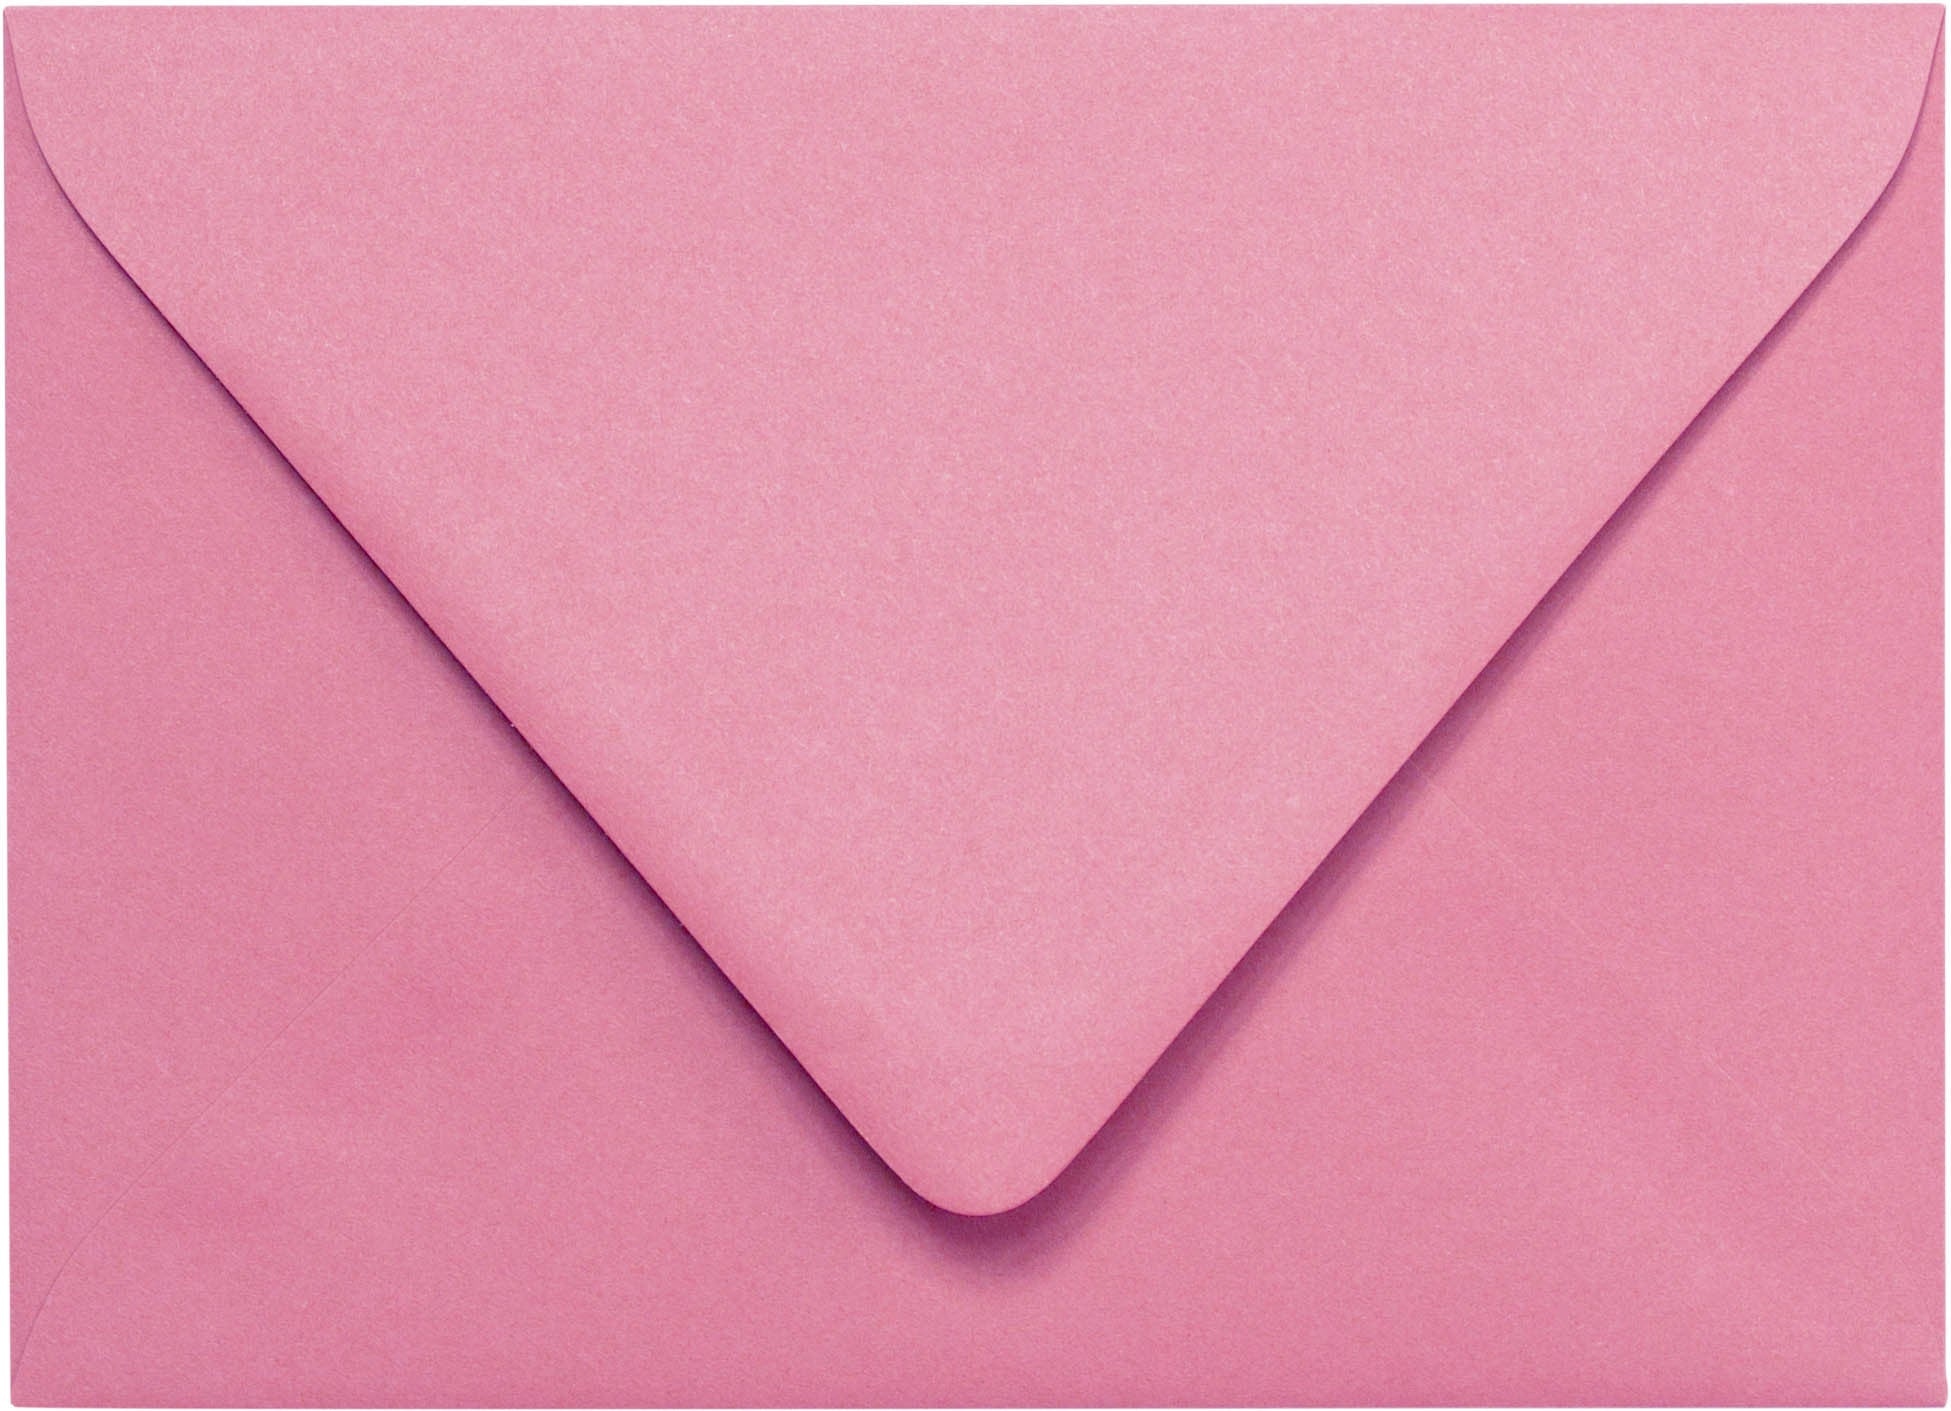 bd48f63c383cf A-7 Cotton Candy Pink Solid Euro Flap Envelopes (5 1/4